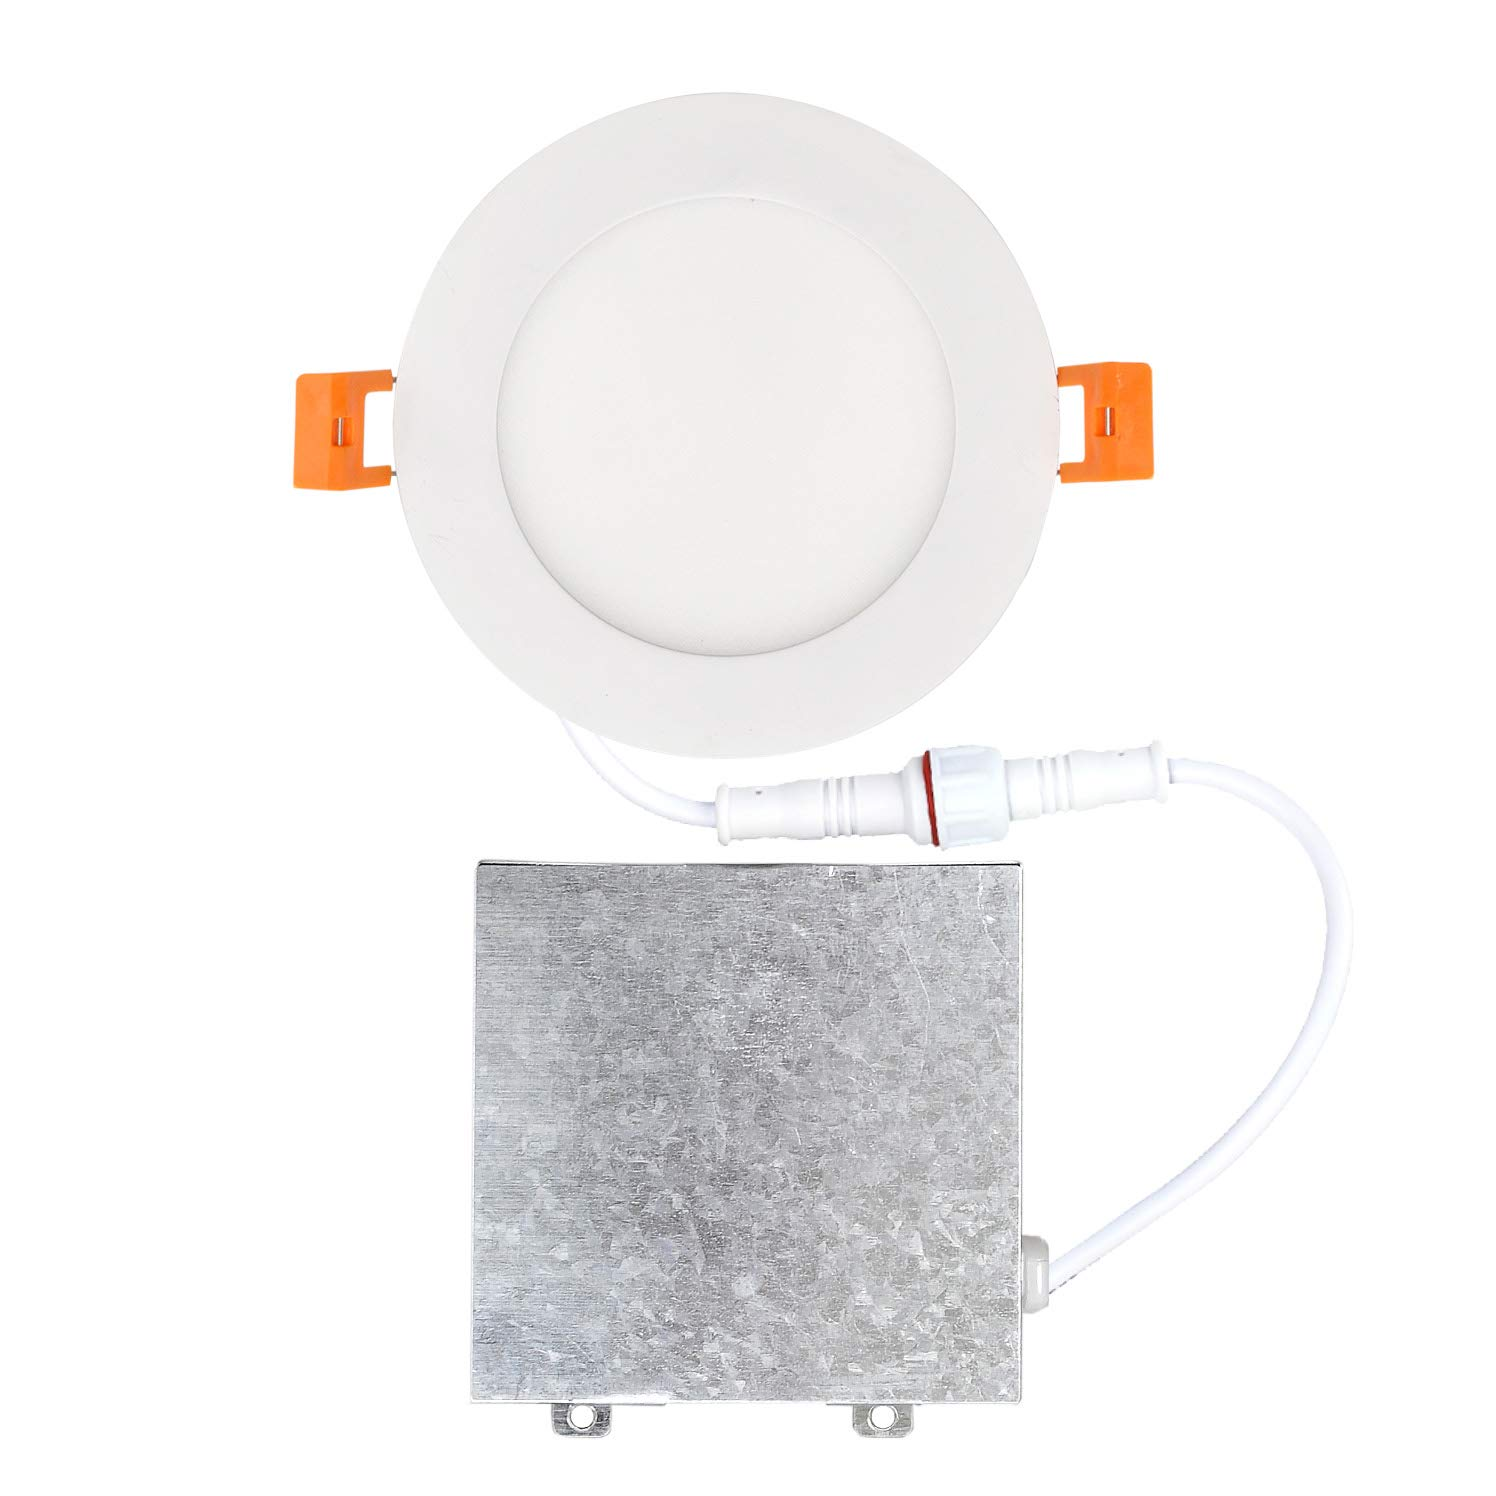 60 Watt Repl. IC Rated LED Recessed Low Profile Slim Round Panel Light with Junction Box No Can Needed OSTWIN 4 inch 12W Dimmable 12 Pack 3000K Warm Light 900 Lm ETL /& Energy Star Listed